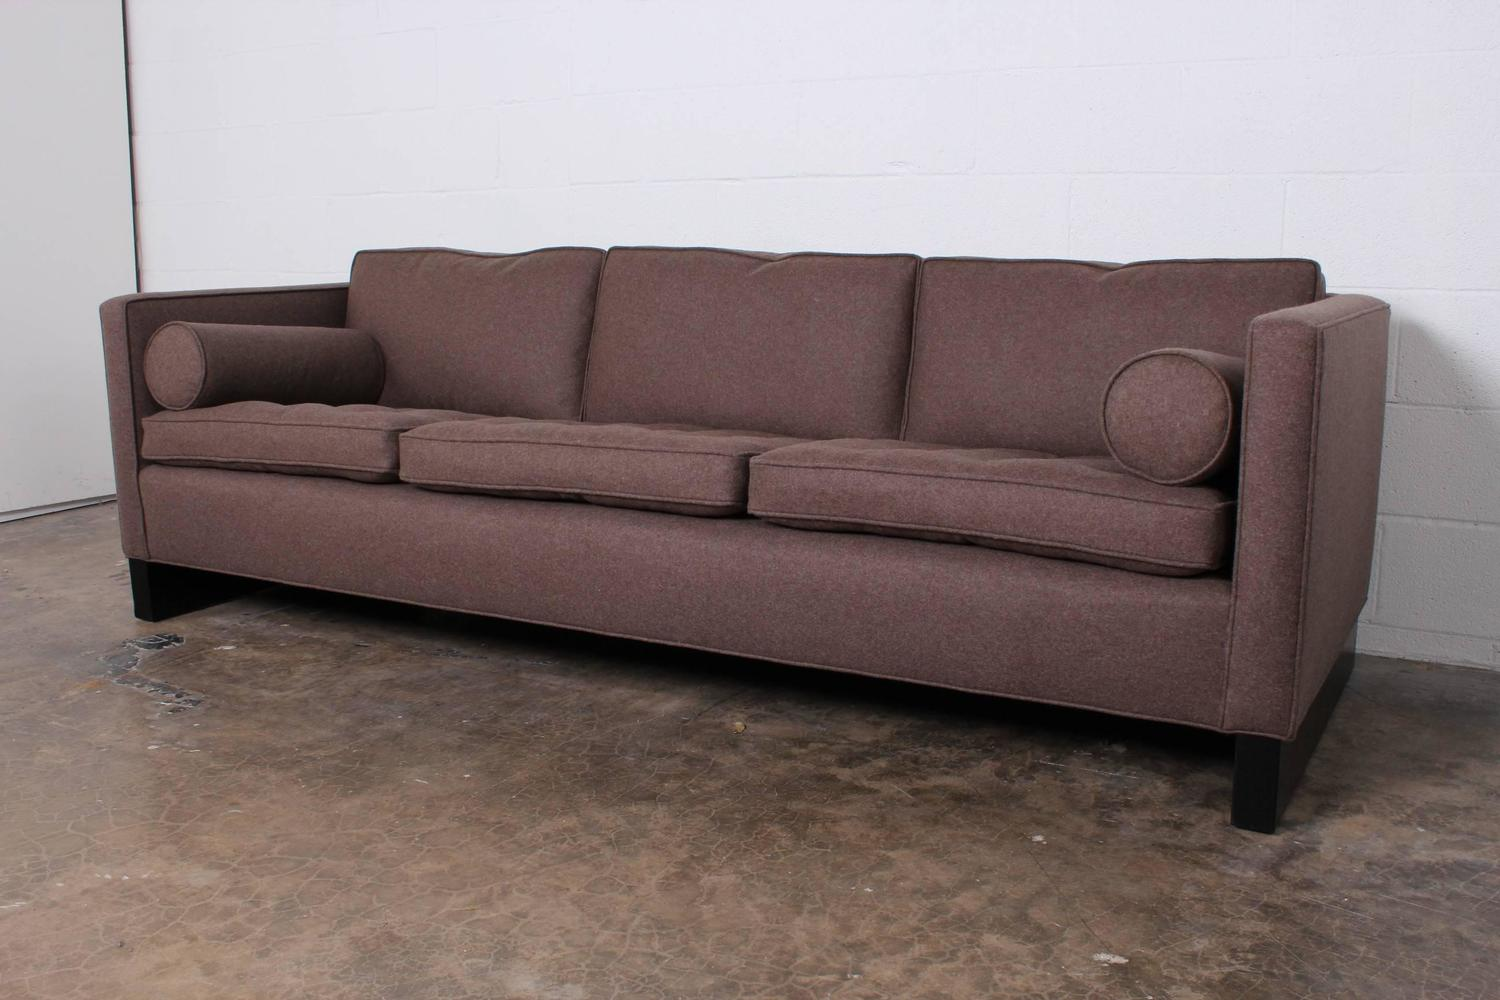 Sofa Designed By Mies Van Der Rohe For Knoll For Sale At